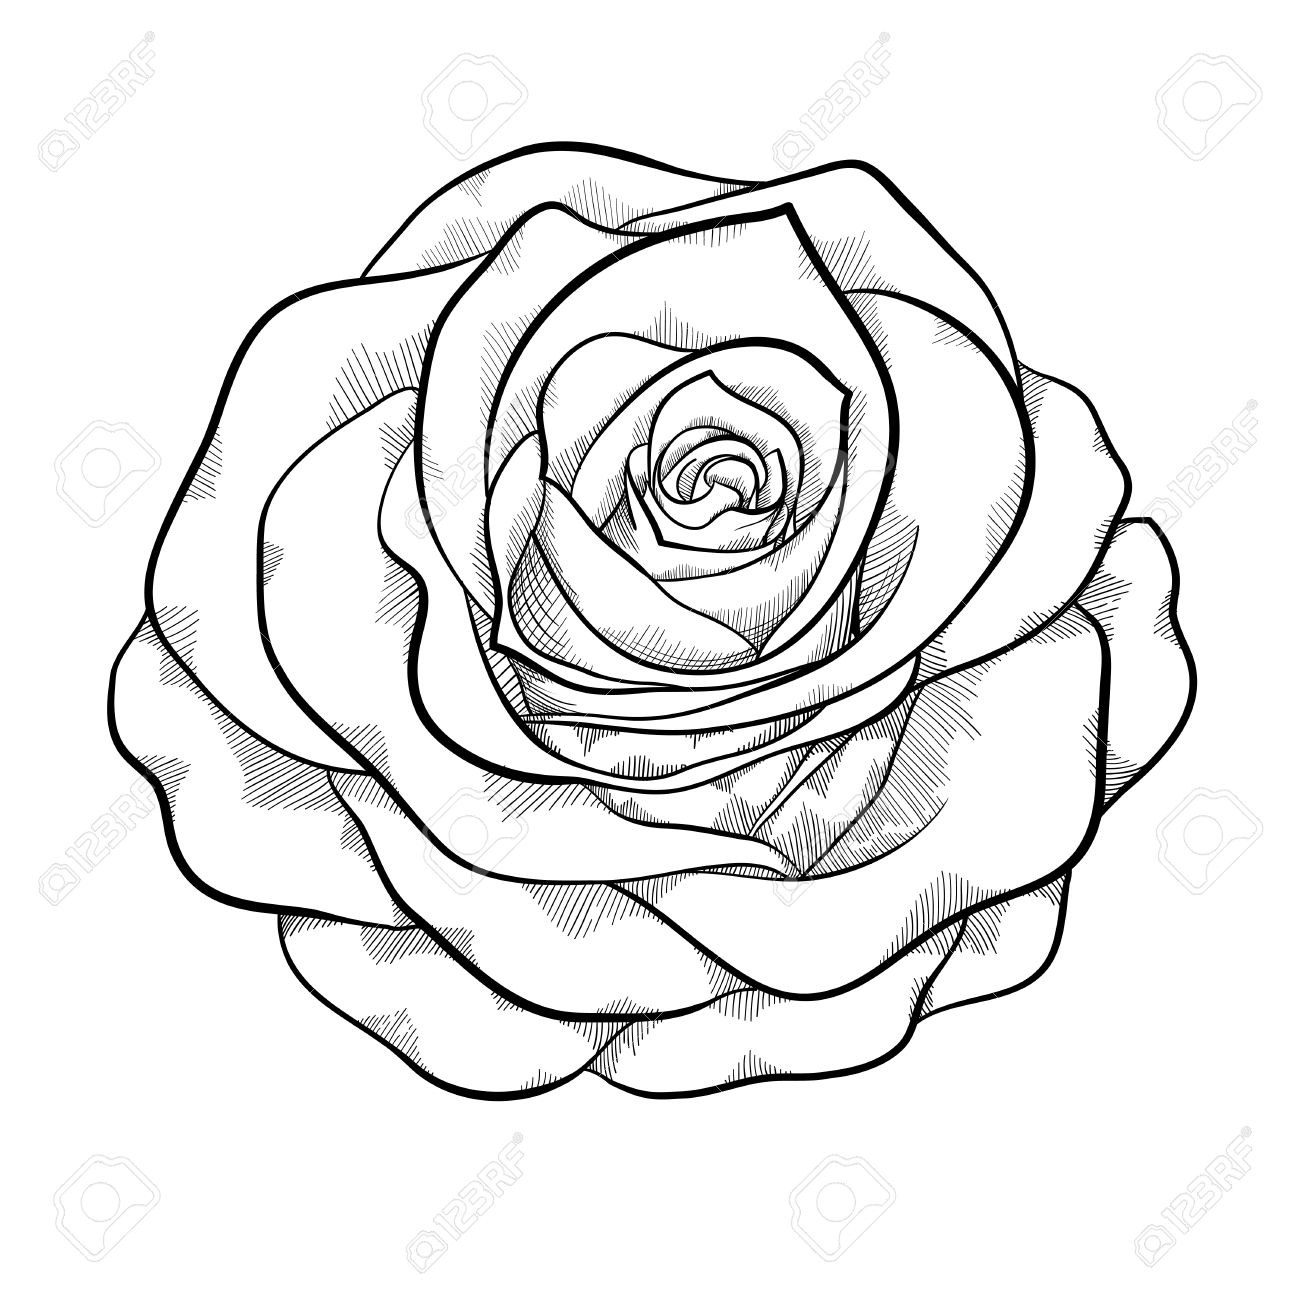 rose black and white drawing at getdrawings com free for personal